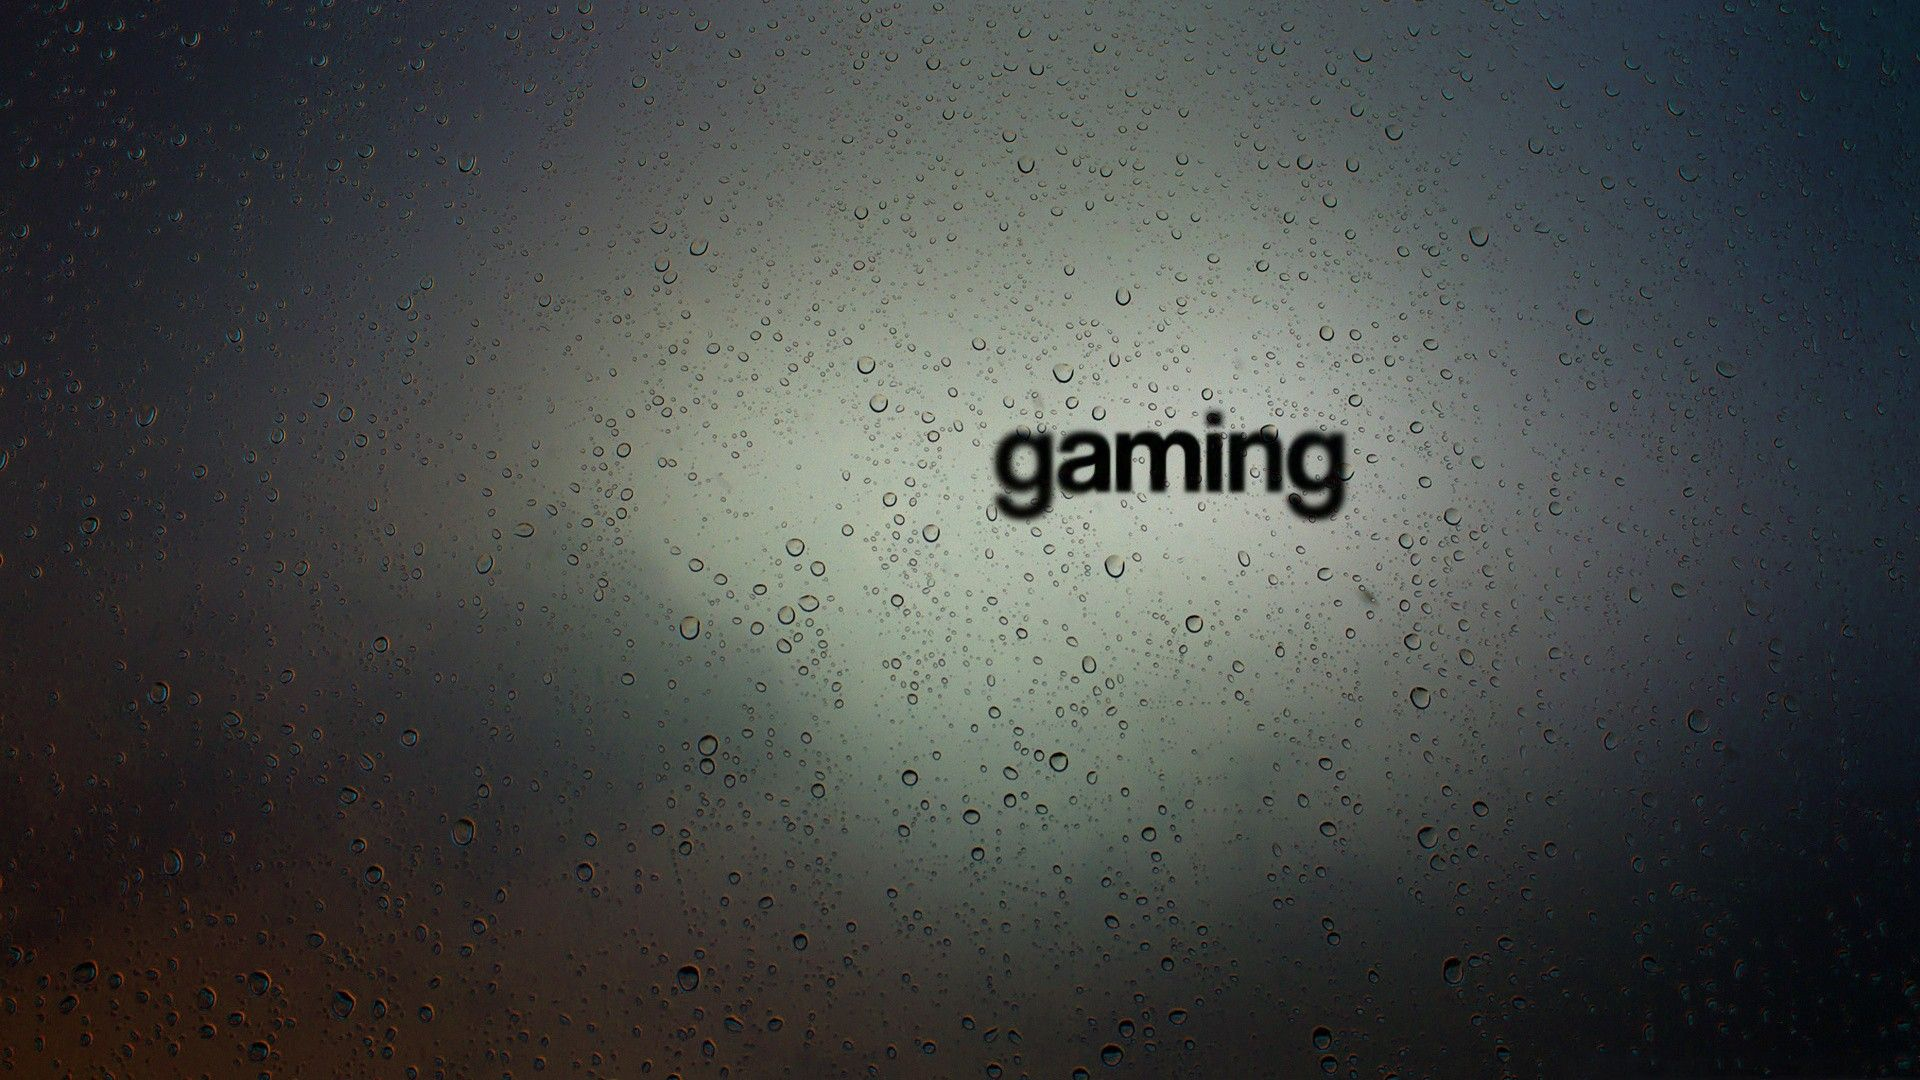 Gaming HD Wallpaper FullHDWpp Full Wallpapers 1920x1080